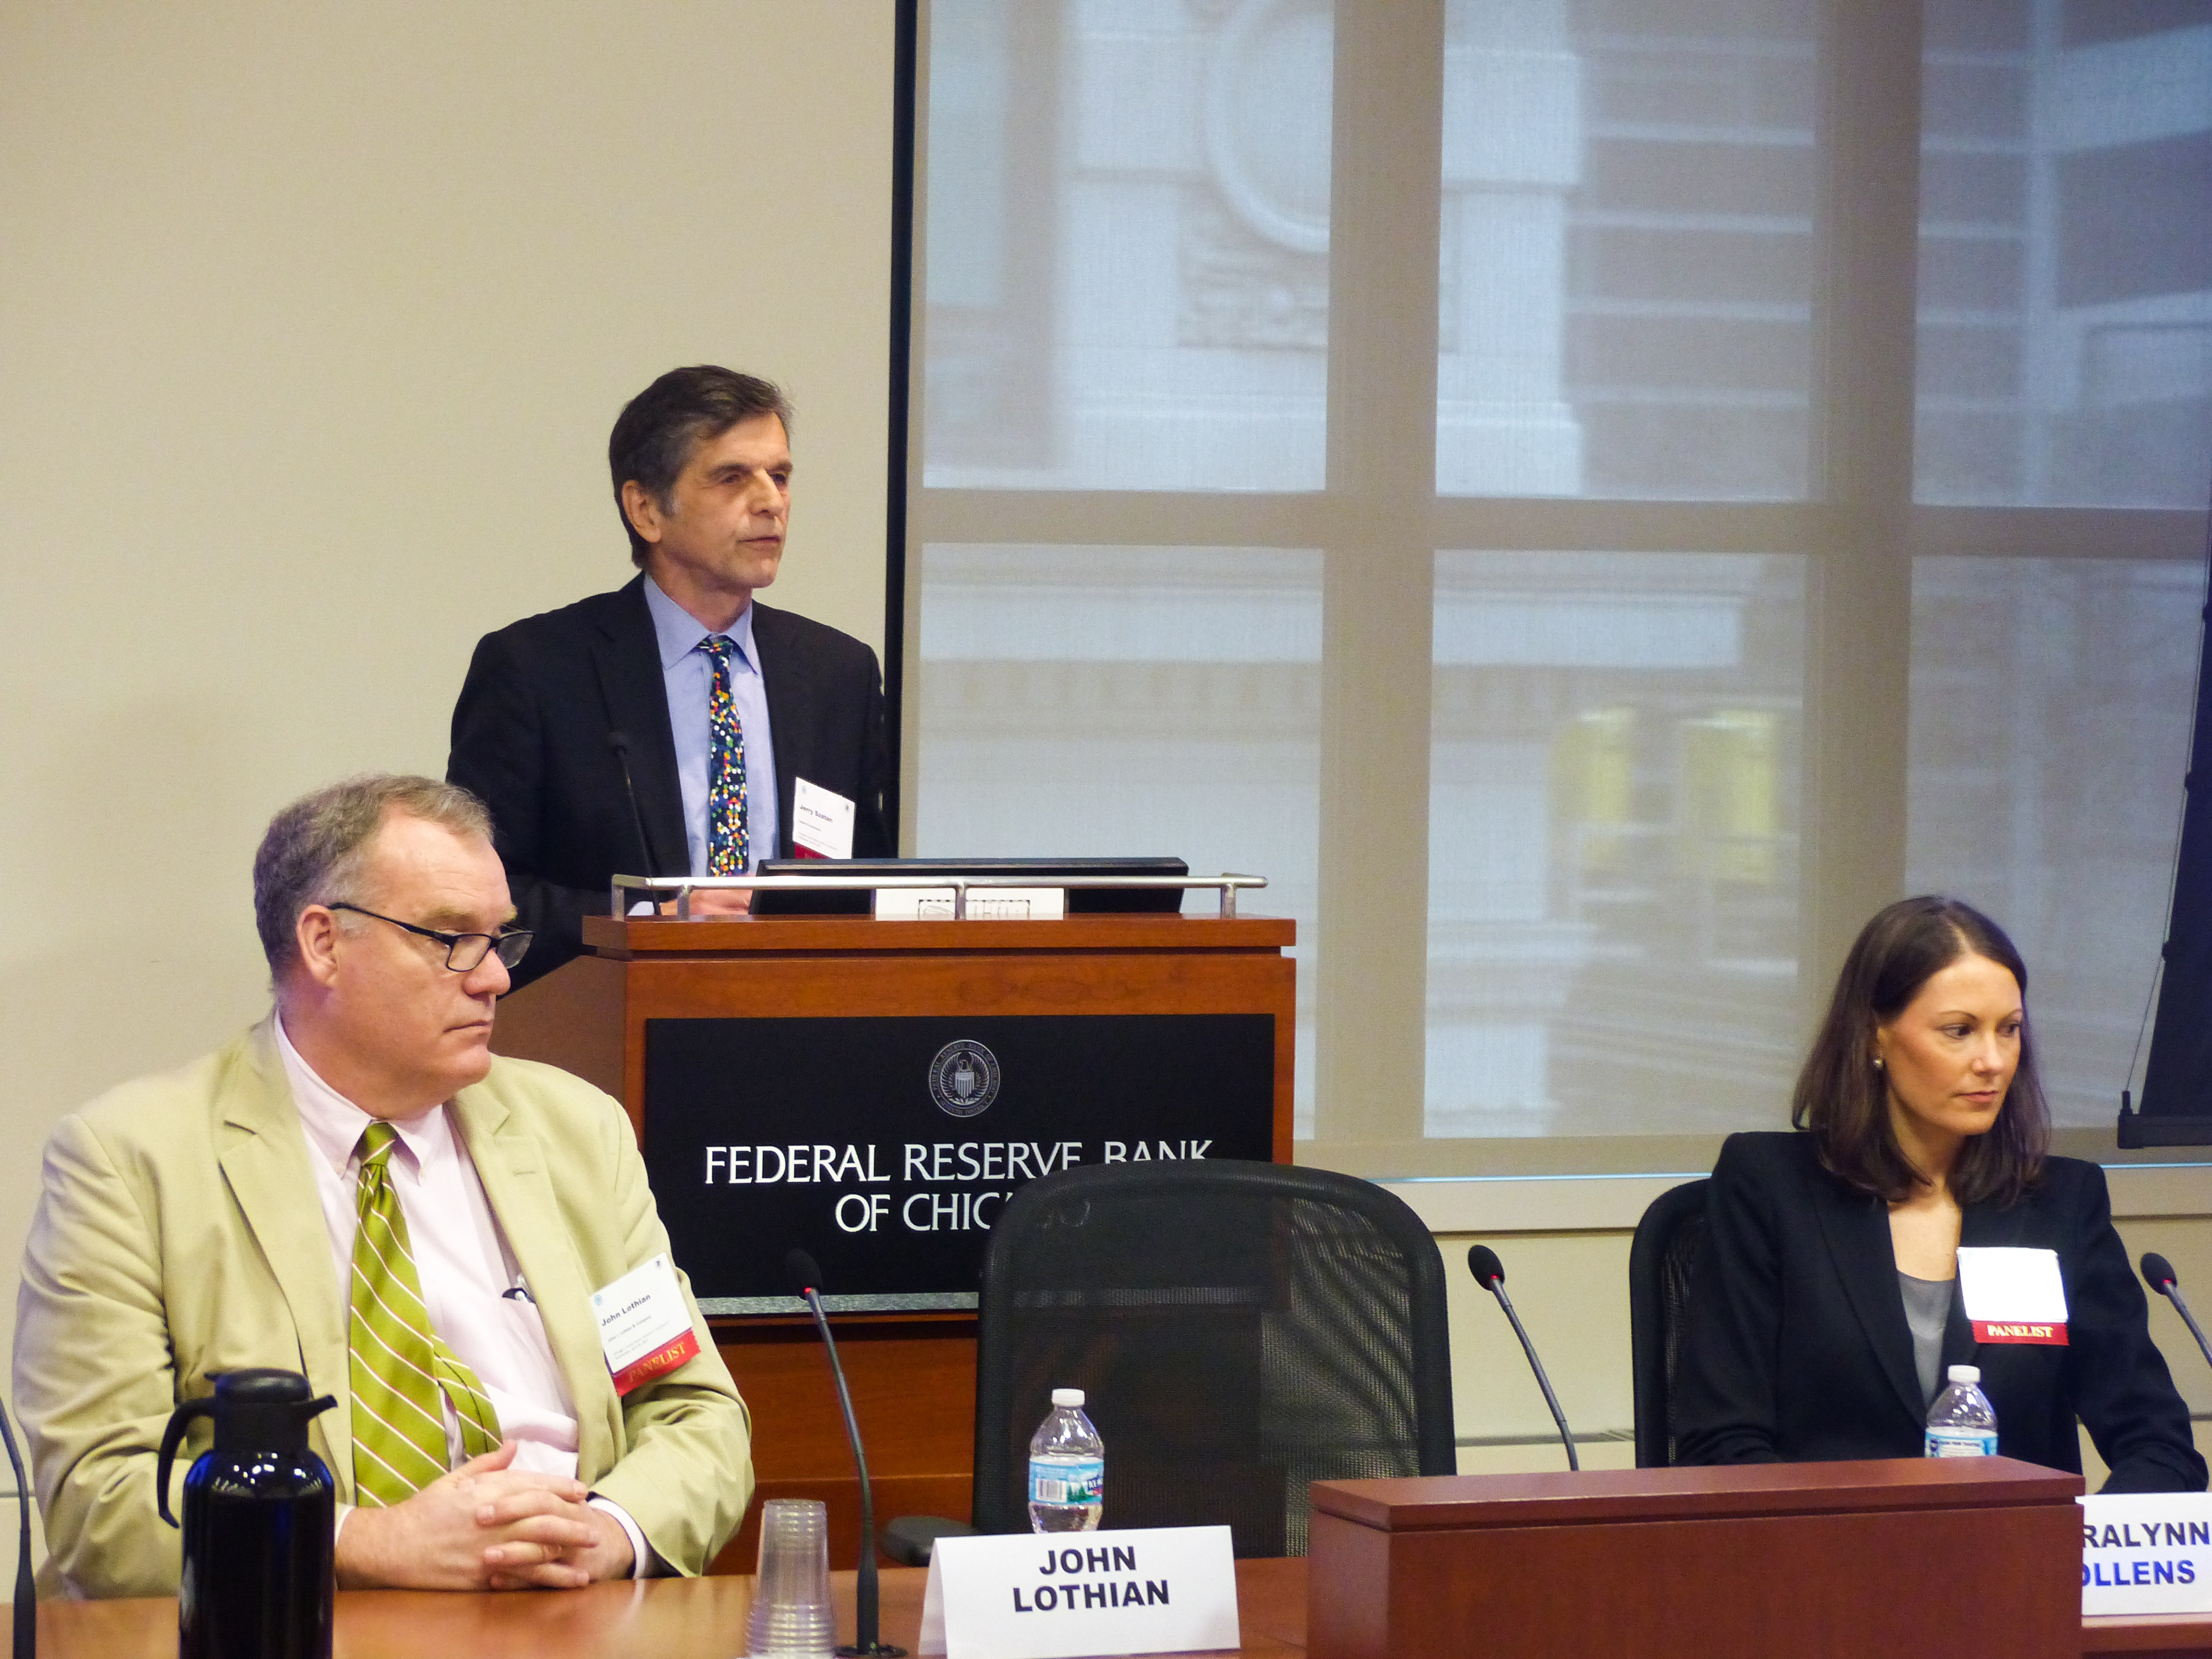 Jerry Szatan, Federal Reserve Bank of Chicago, Civic Federation